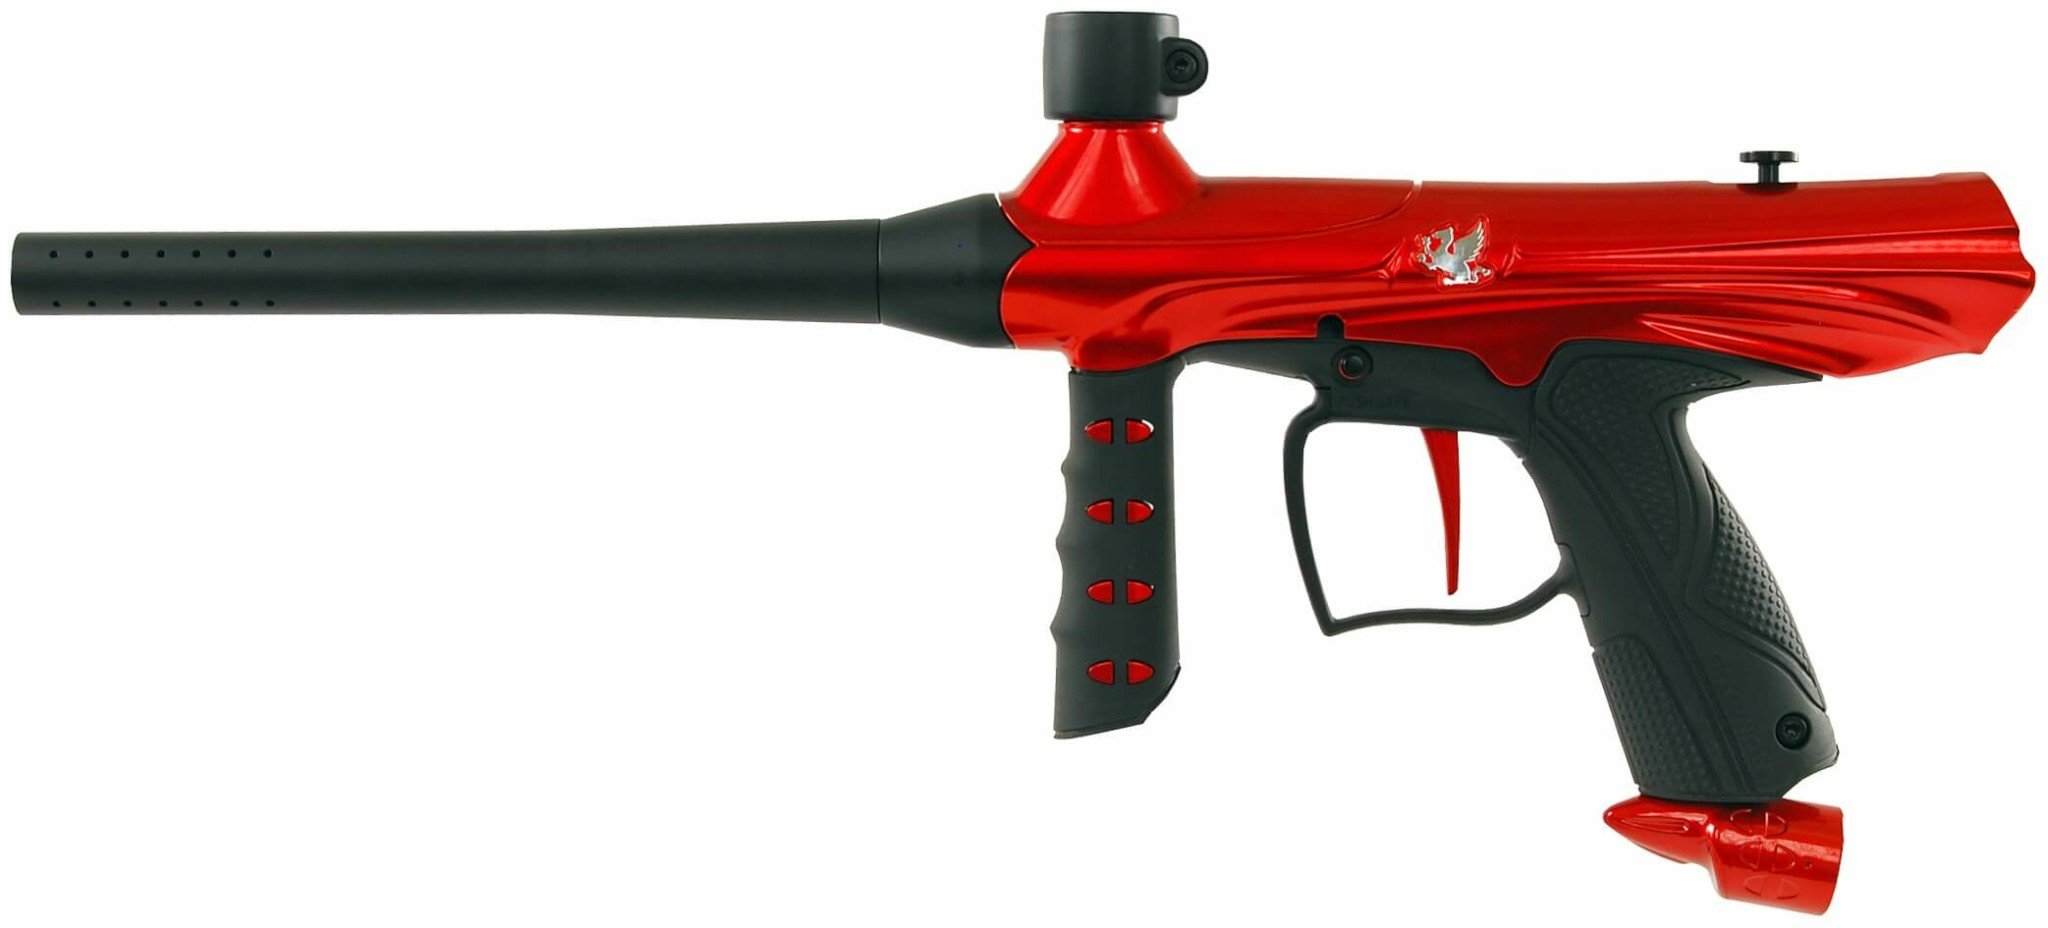 tippmann_gryphon_paintball_gun_red